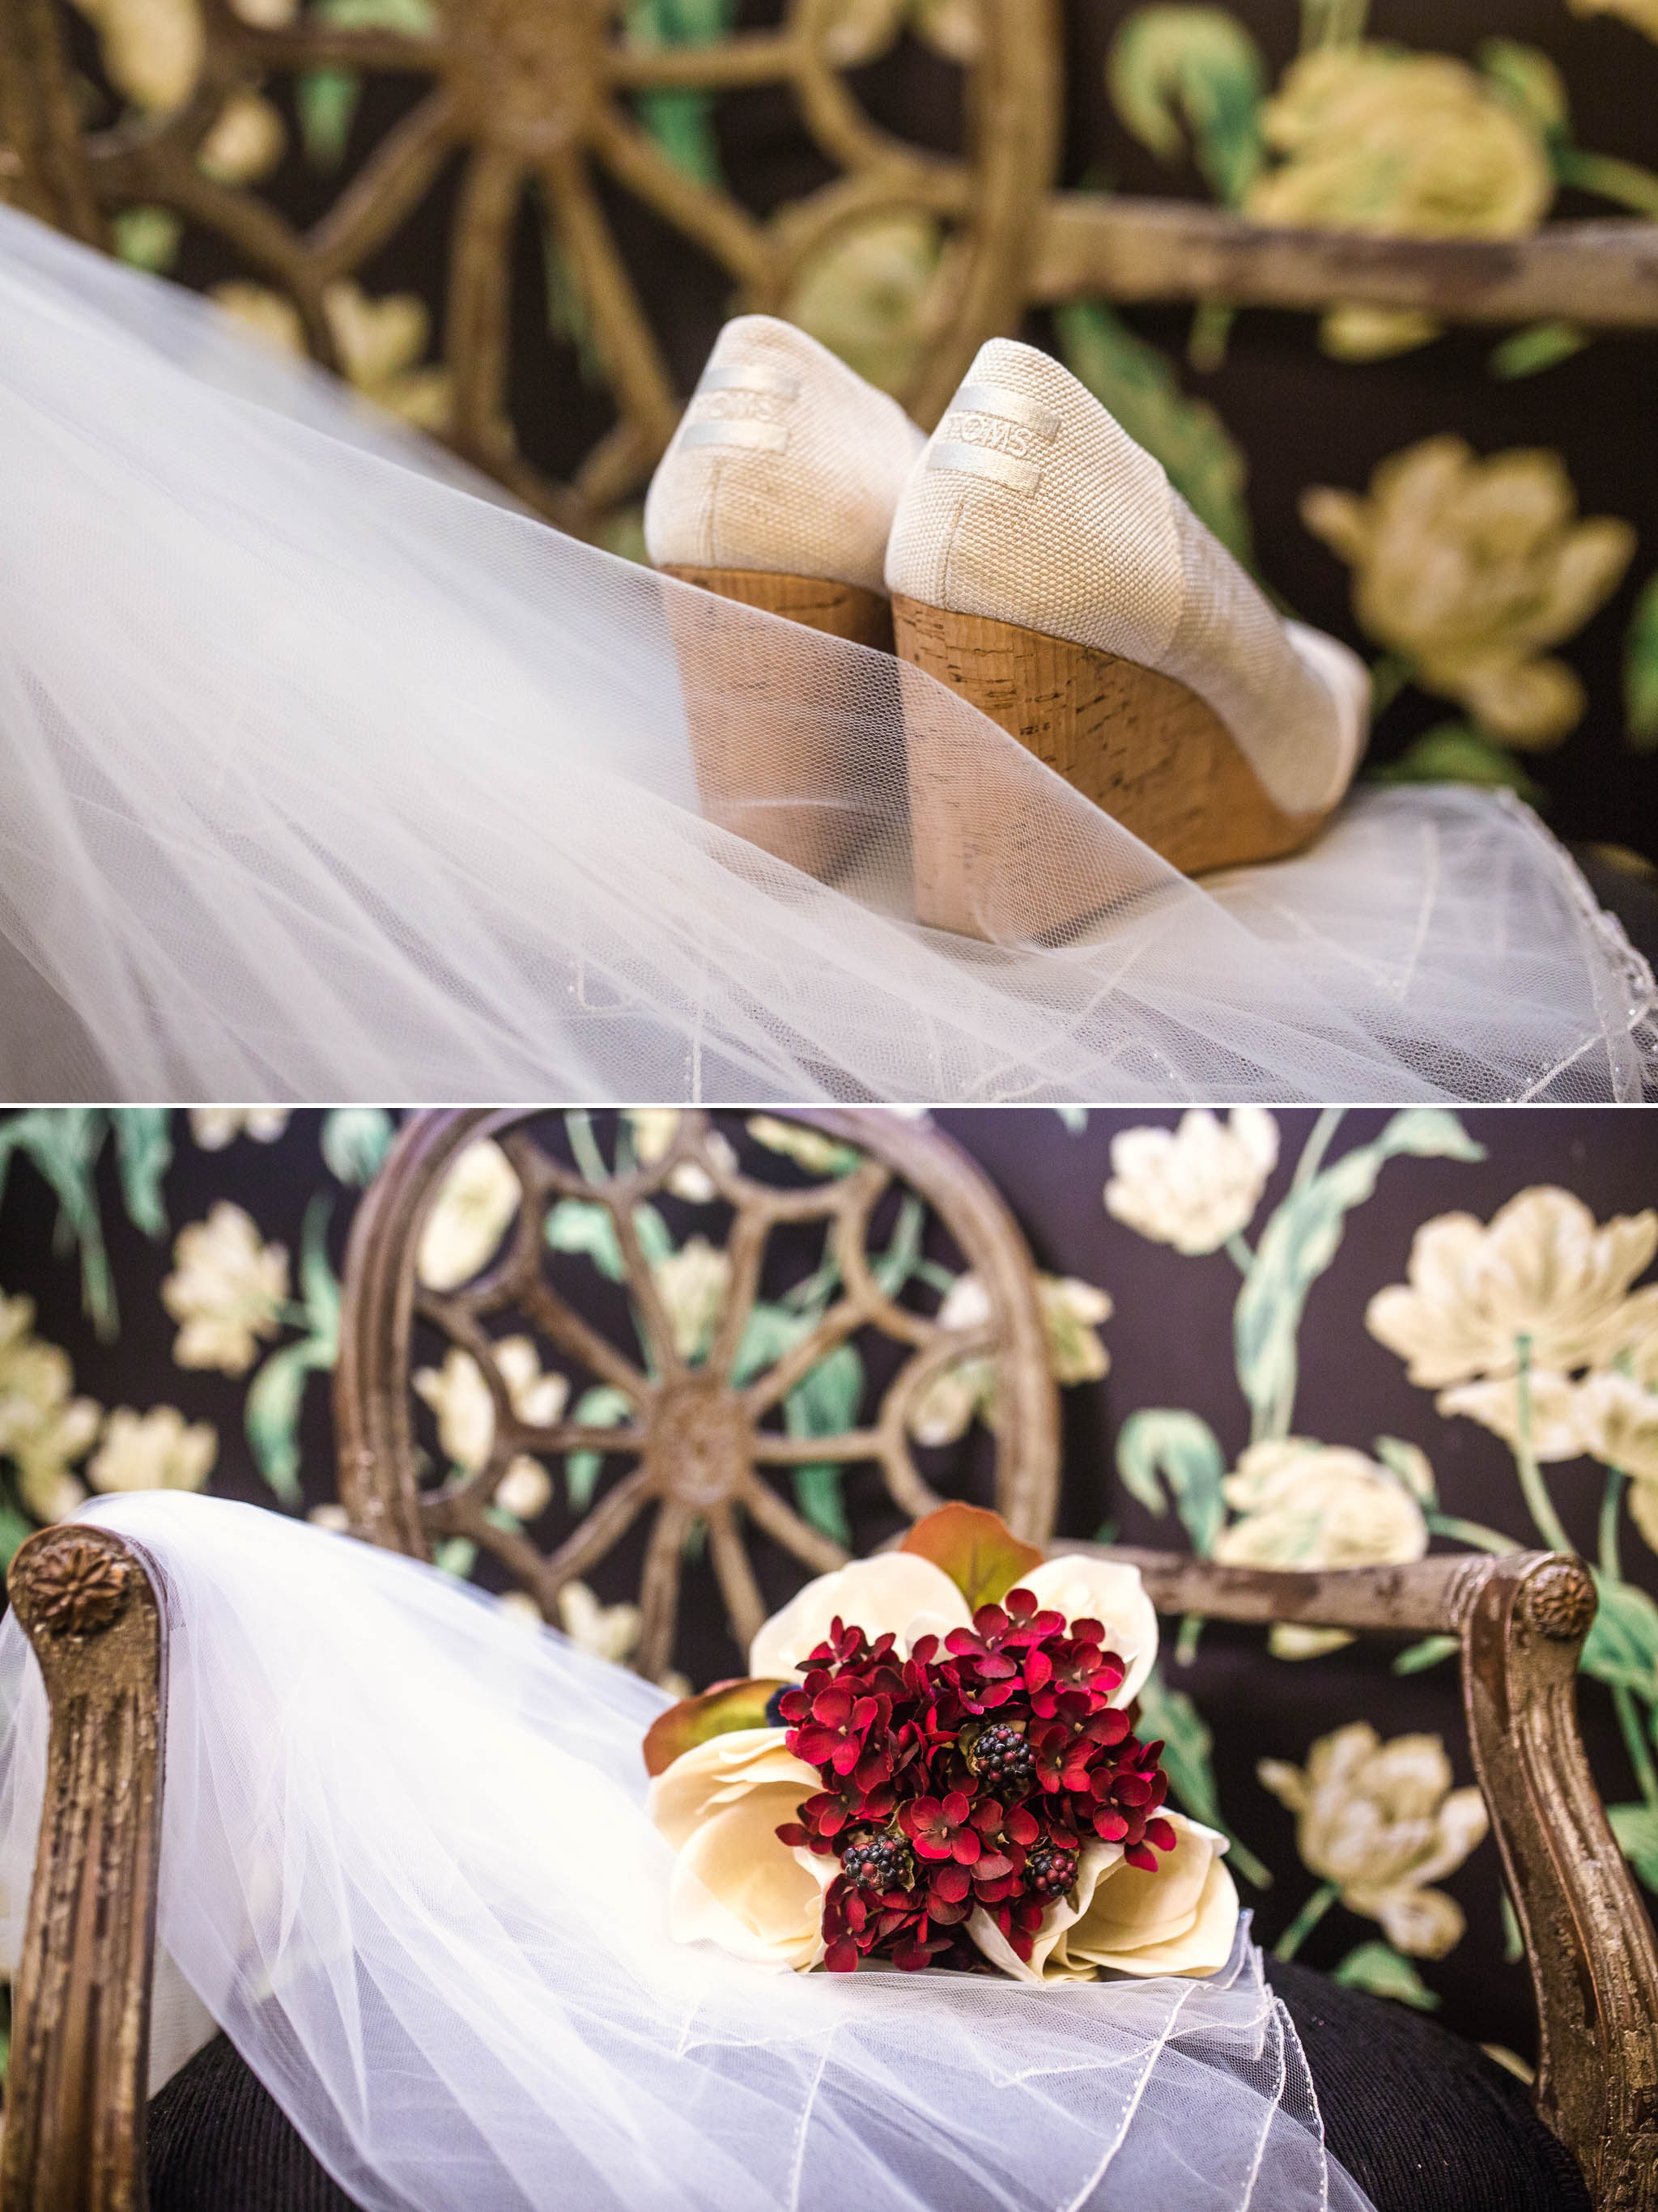 The Wedding Shoes and Bridal bouquet - Meredith + Jason - The Crest Center and Pavilion in Asheville, NC - Raleigh Wedding Photographer